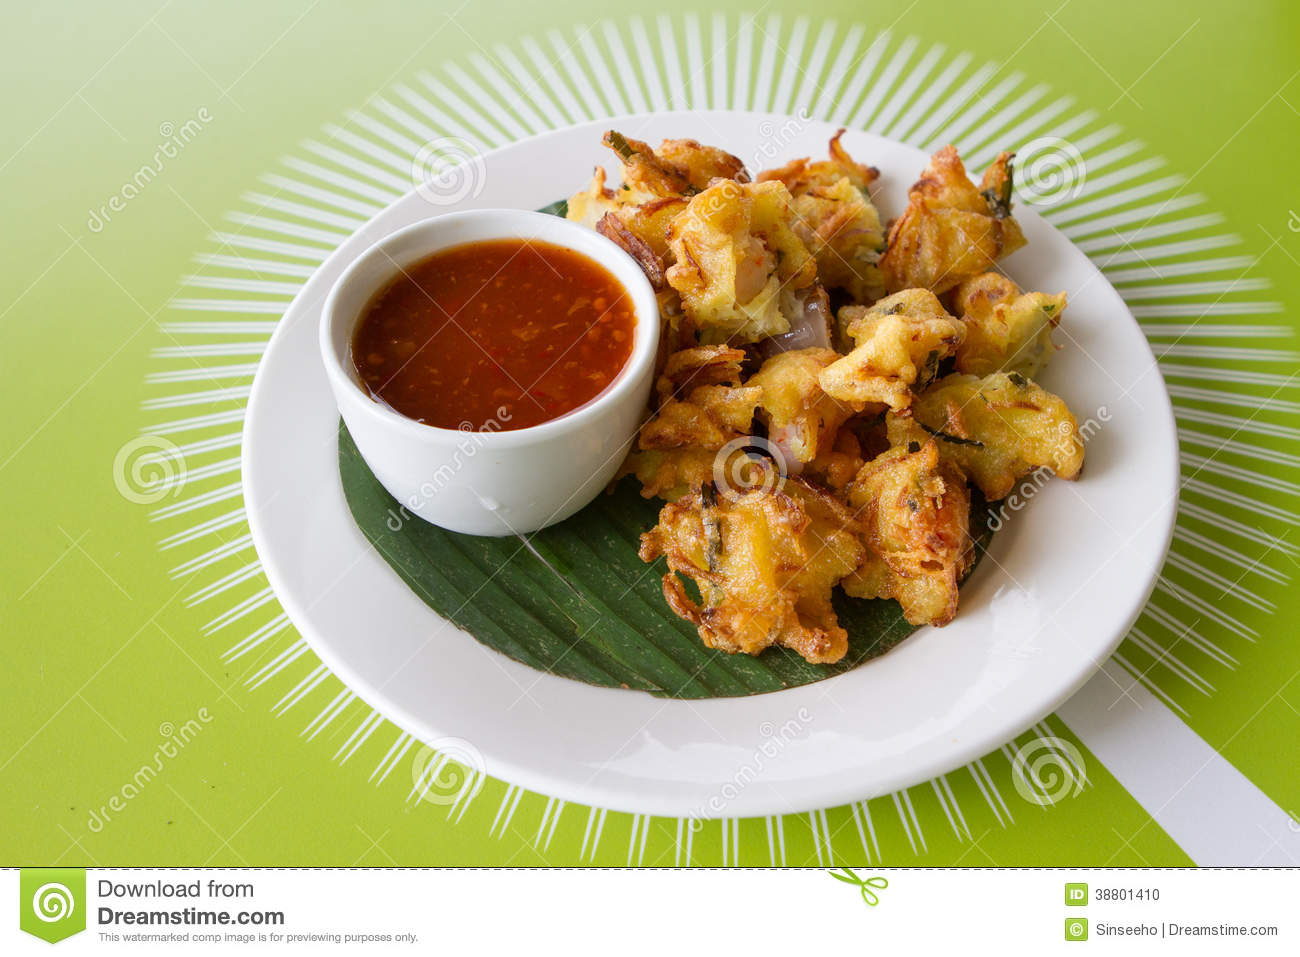 Cucur Udang Prawn Fritters Stock Photo - Image: 38801410